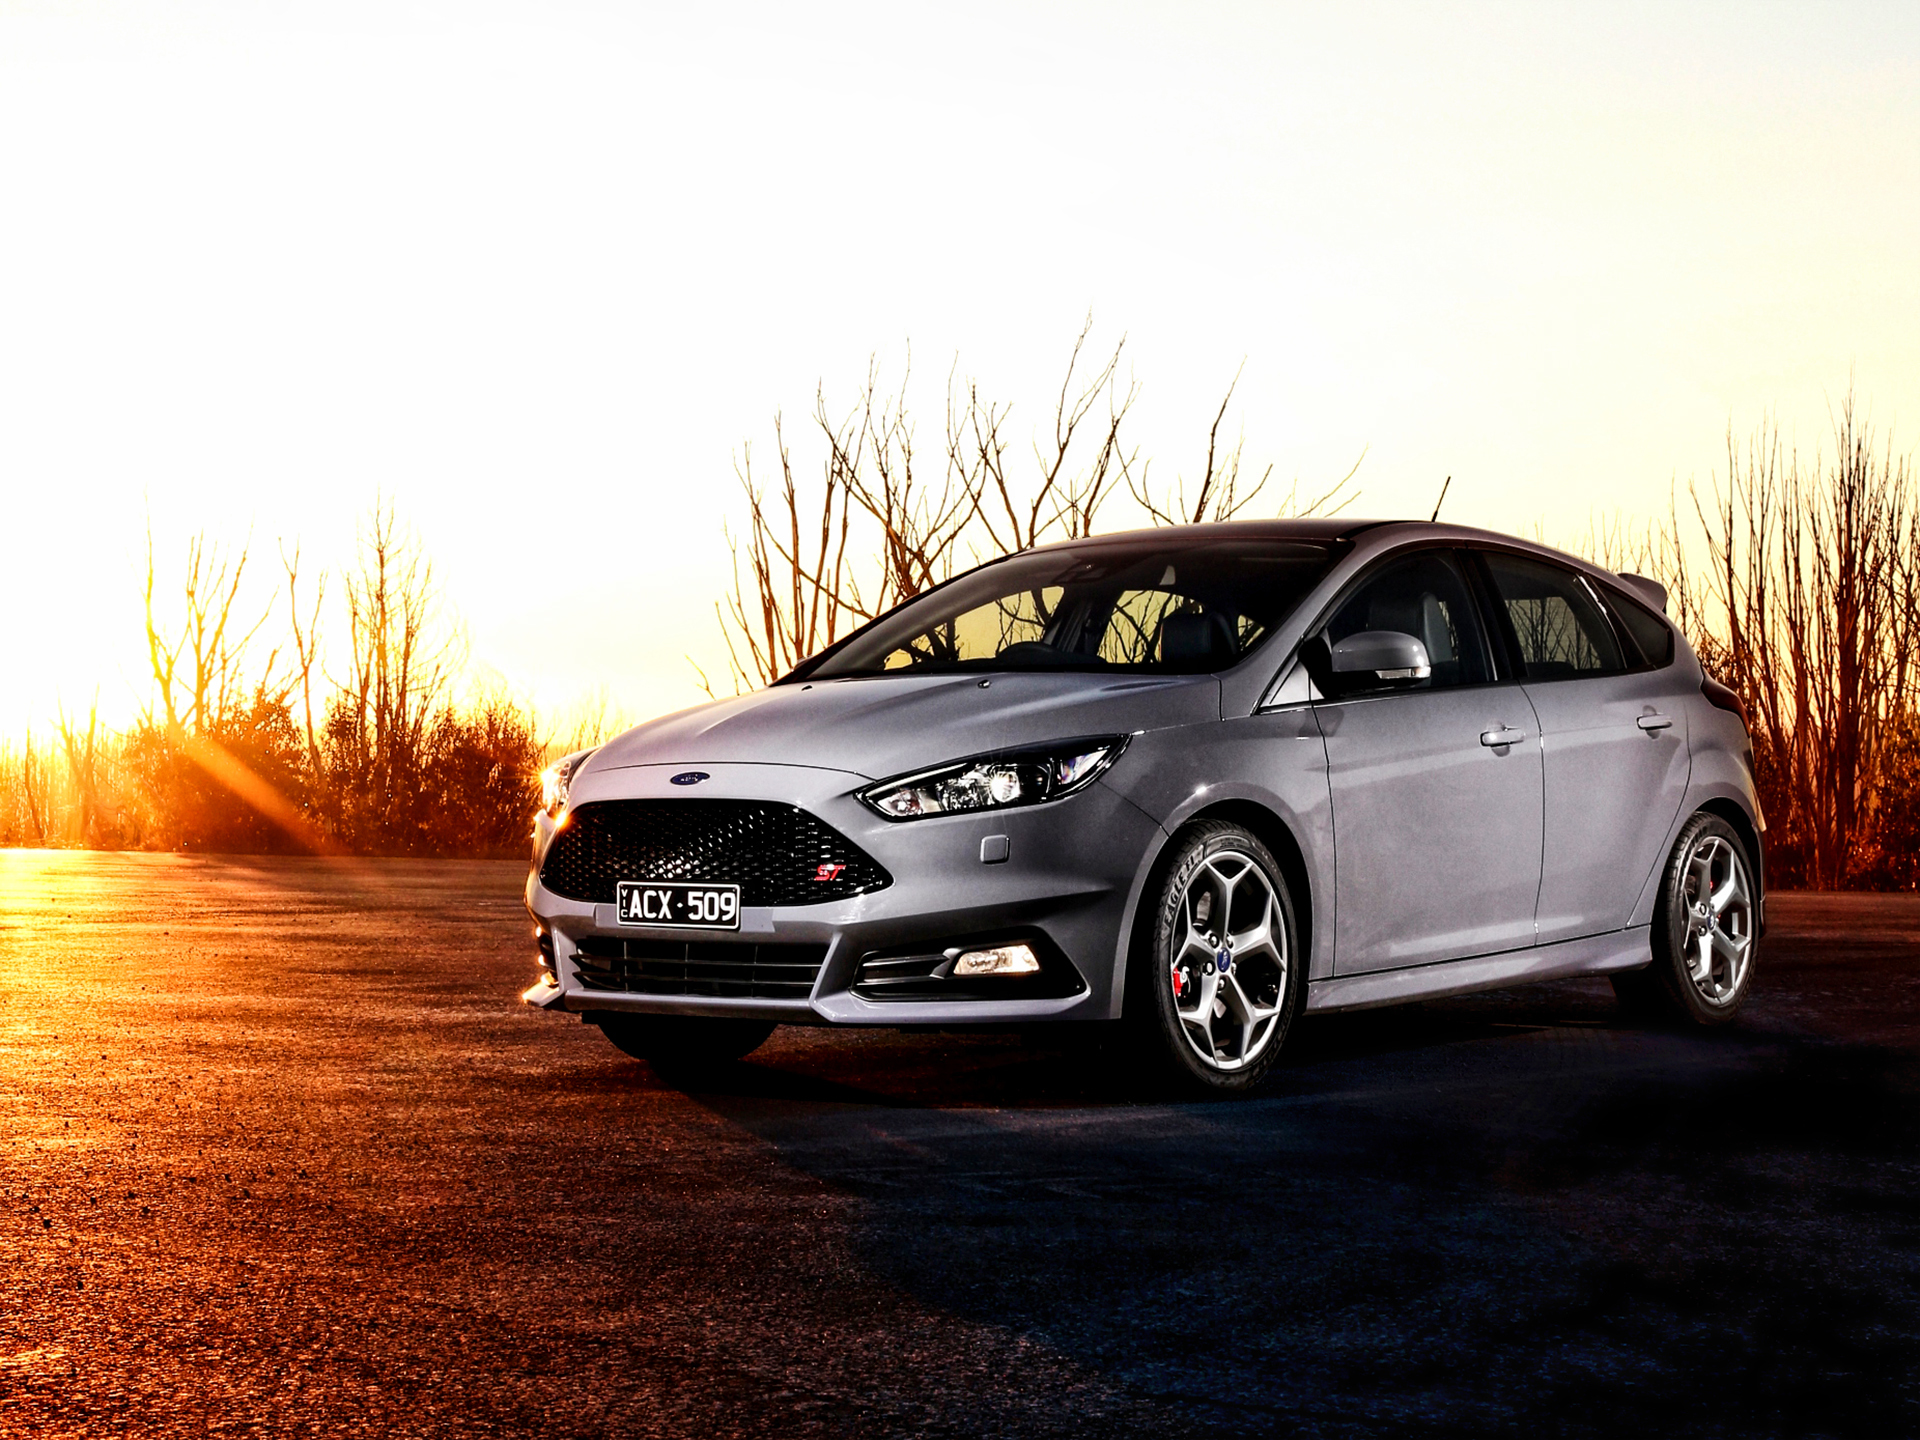 Ford Focus Hd Wallpaper Background Image 1920x1440 Id 712209